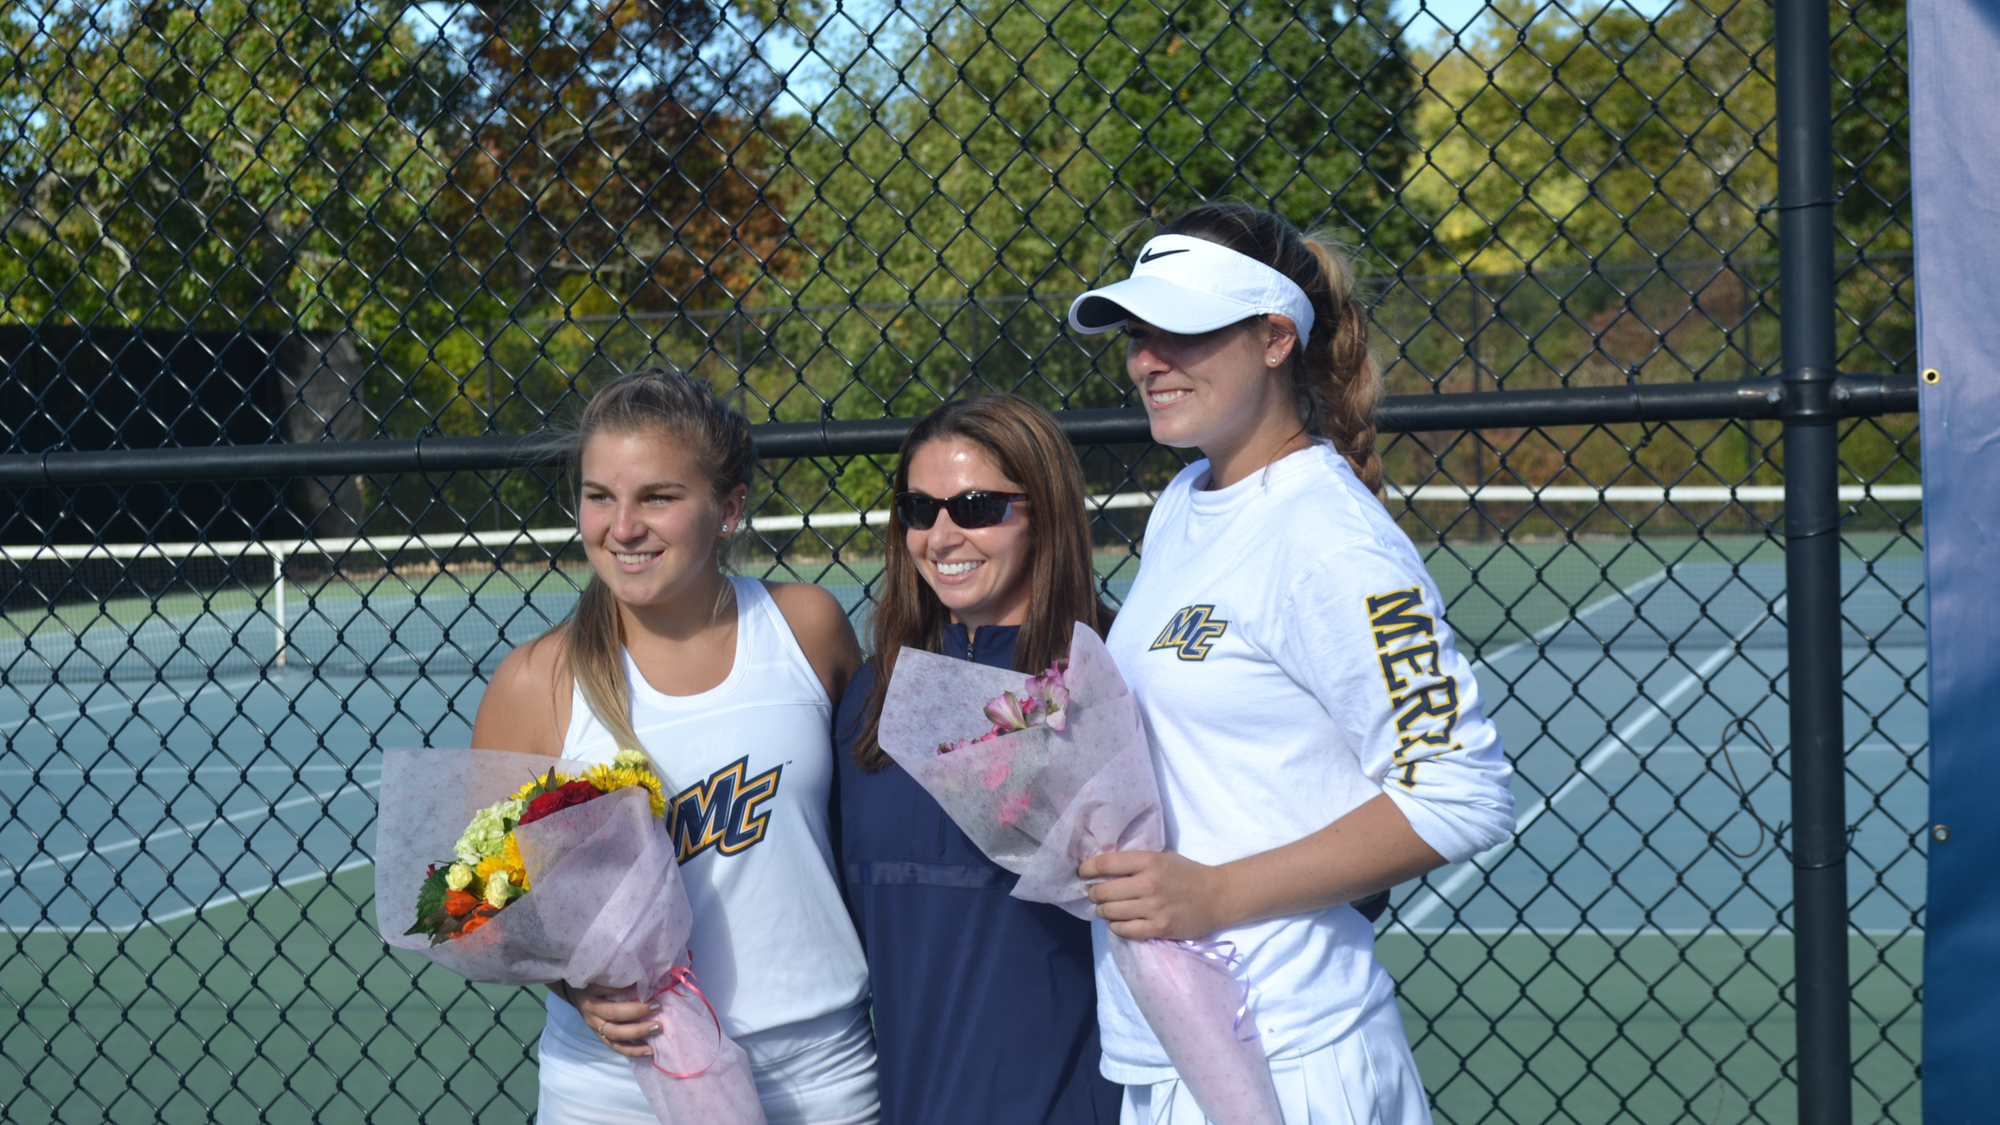 Women s Tennis Celebrates Senior Day with 6-3 Victory vs. Saint Anselm  Friday 21ccab803726